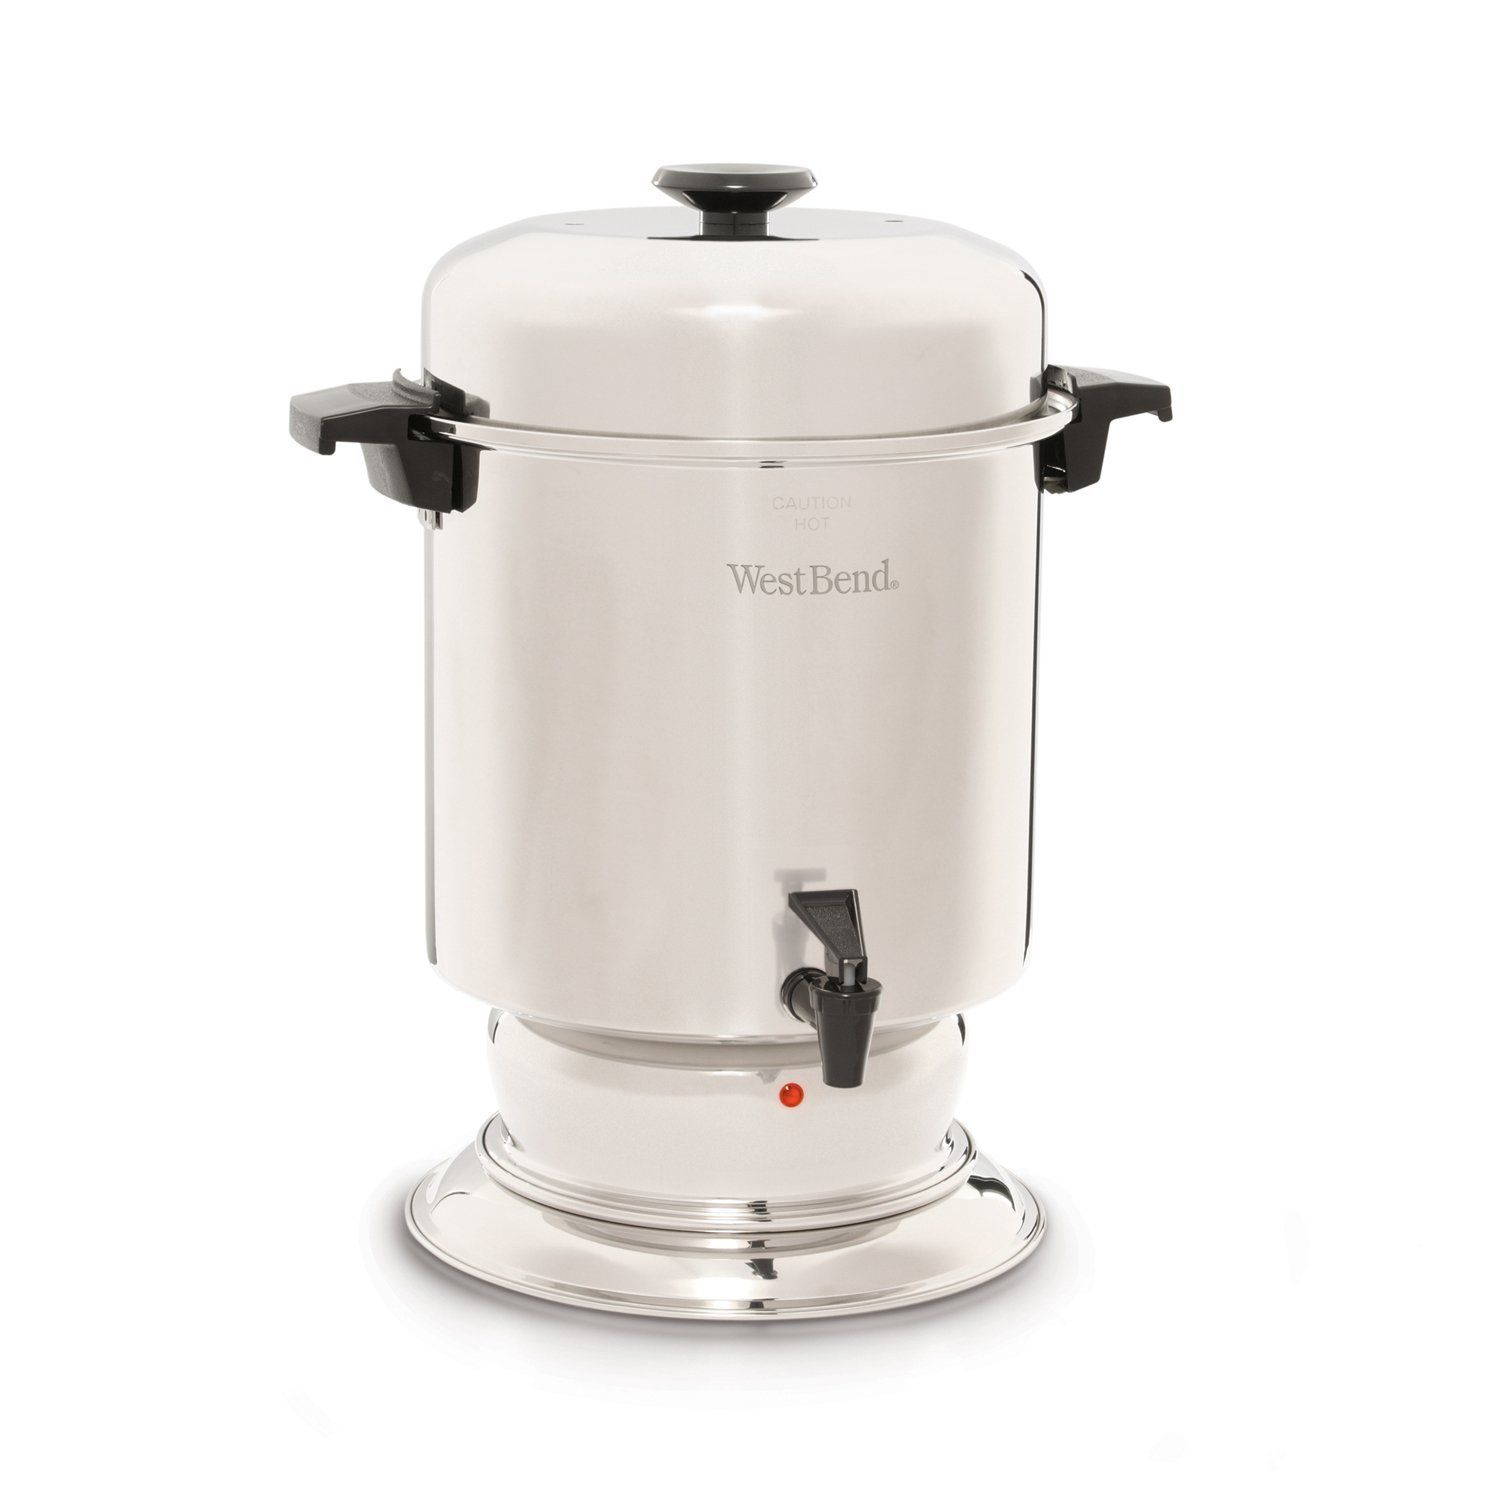 West Bend 55 Cup Commercial Stainless Steel Coffeemaker Coffee Maker Coffee Urn Coffee Making Machine